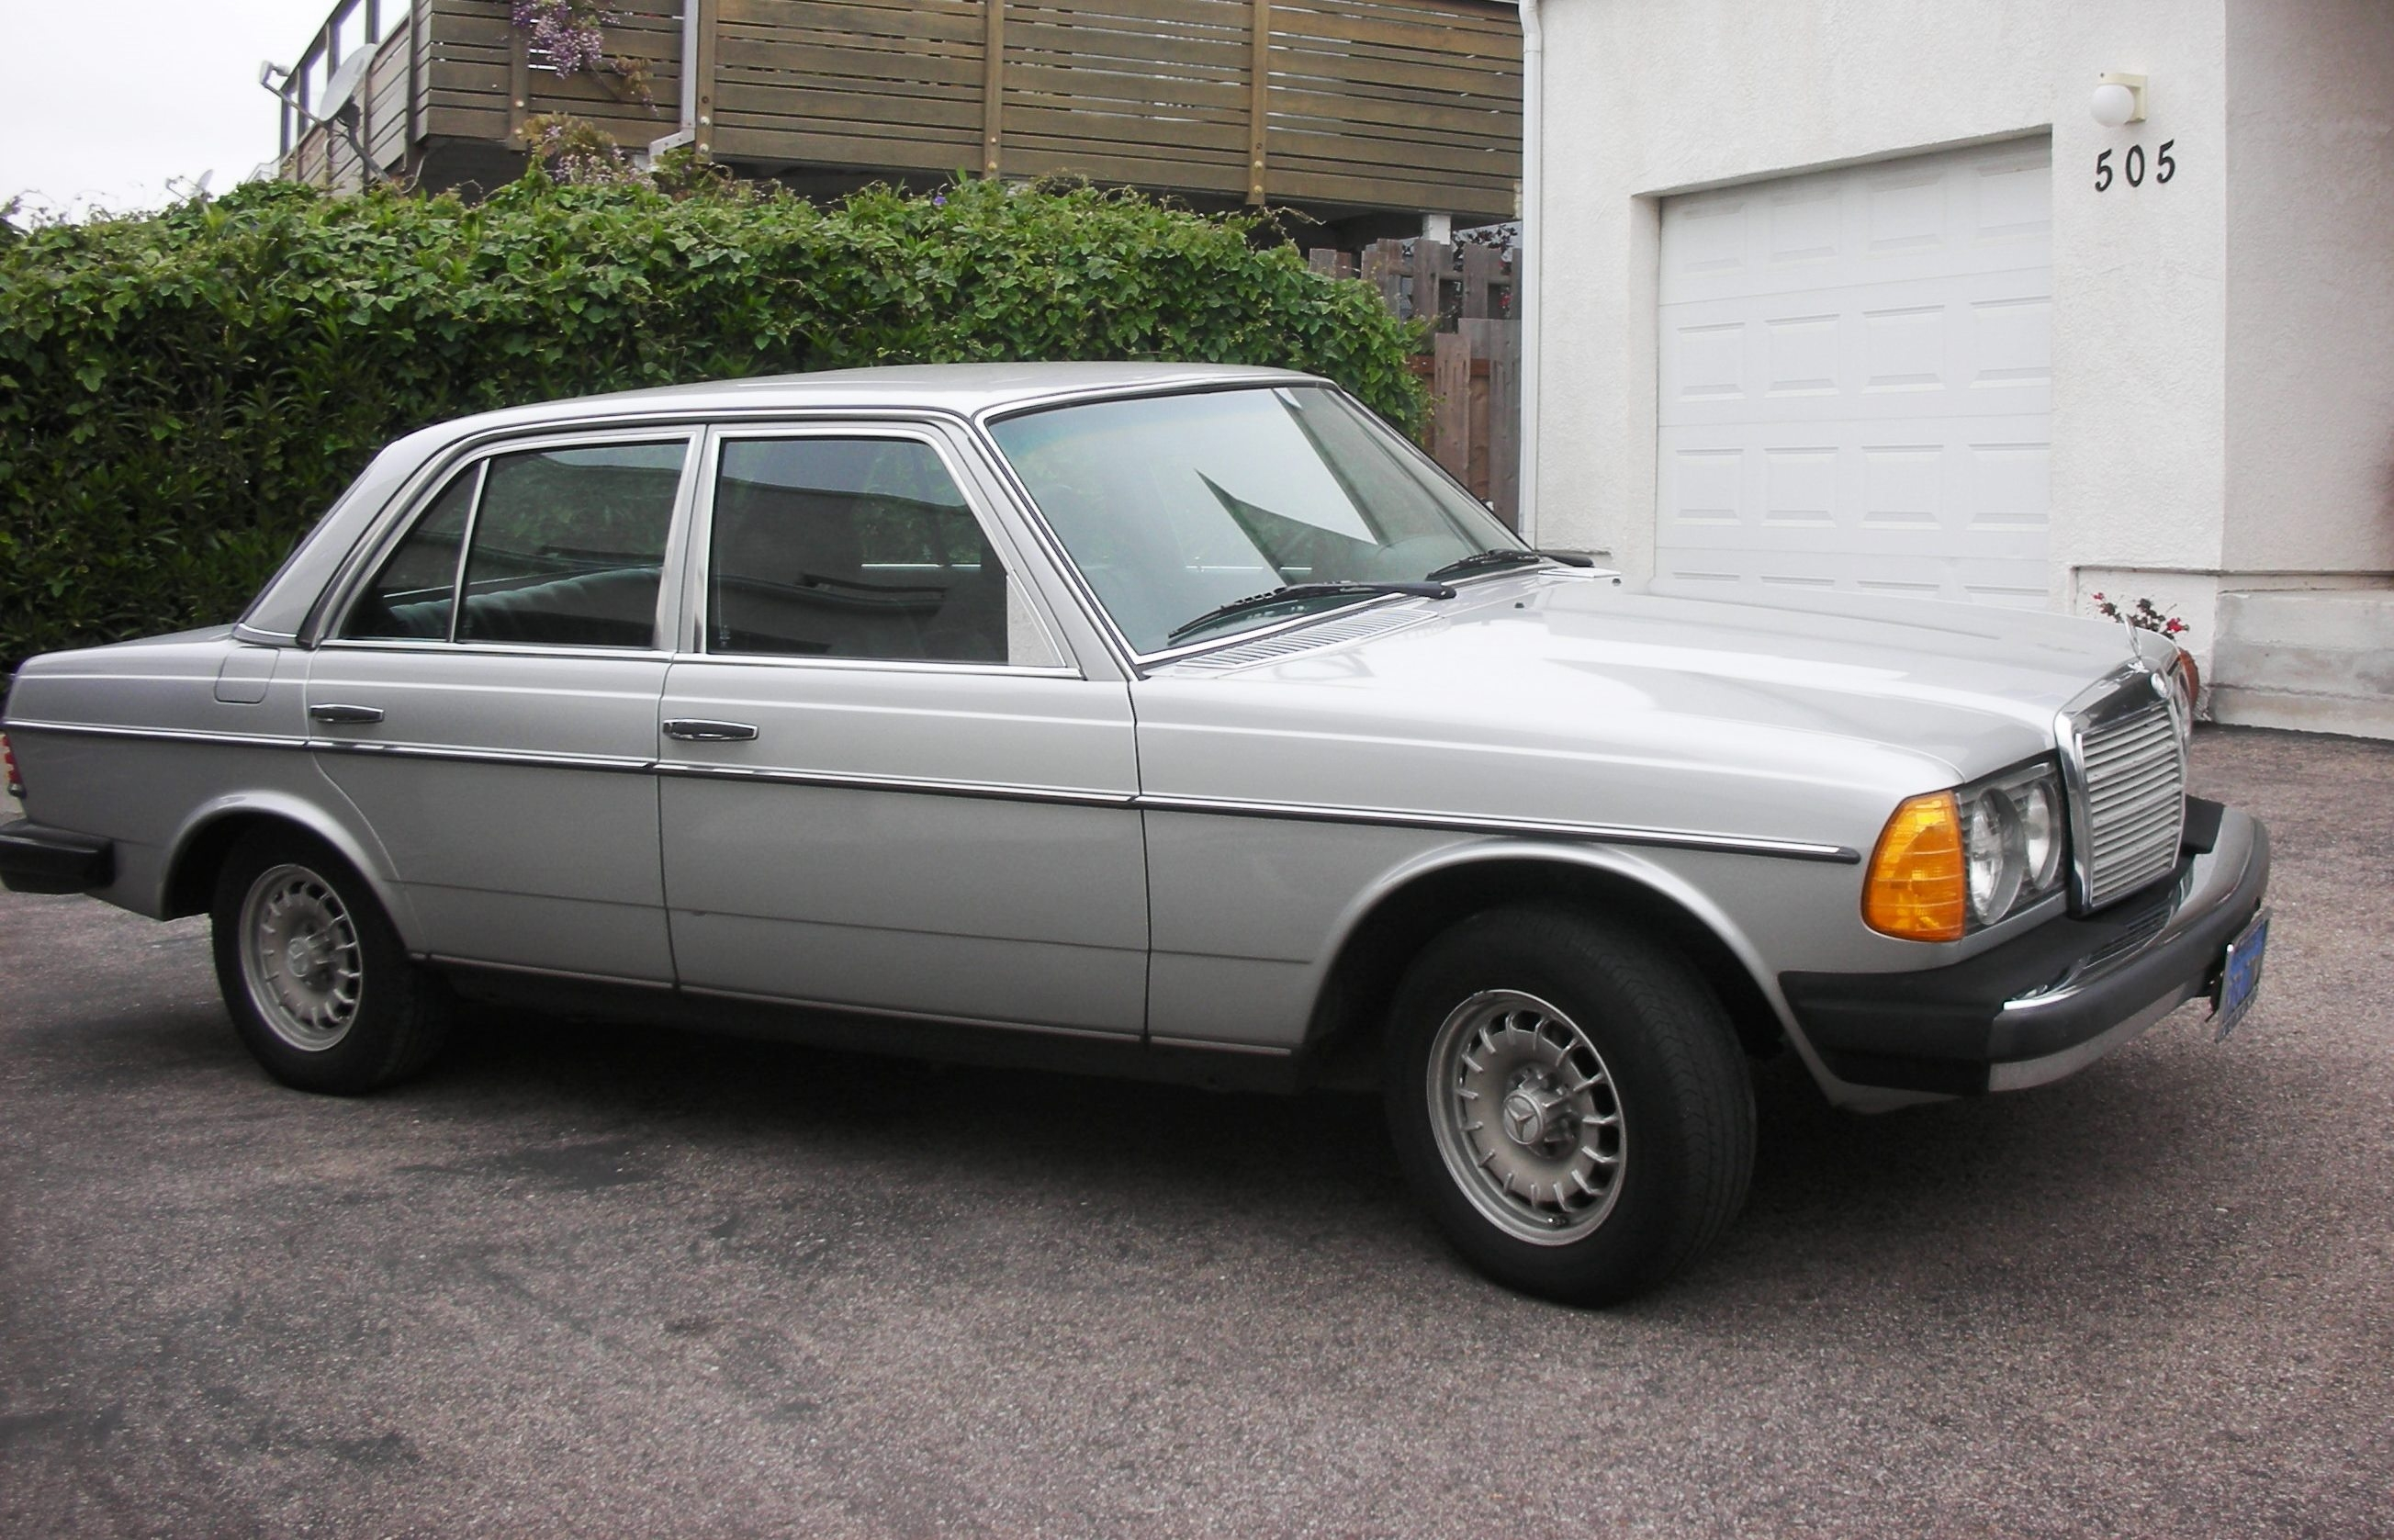 1980 mercedes benz 300d information and photos momentcar for 1980s mercedes benz